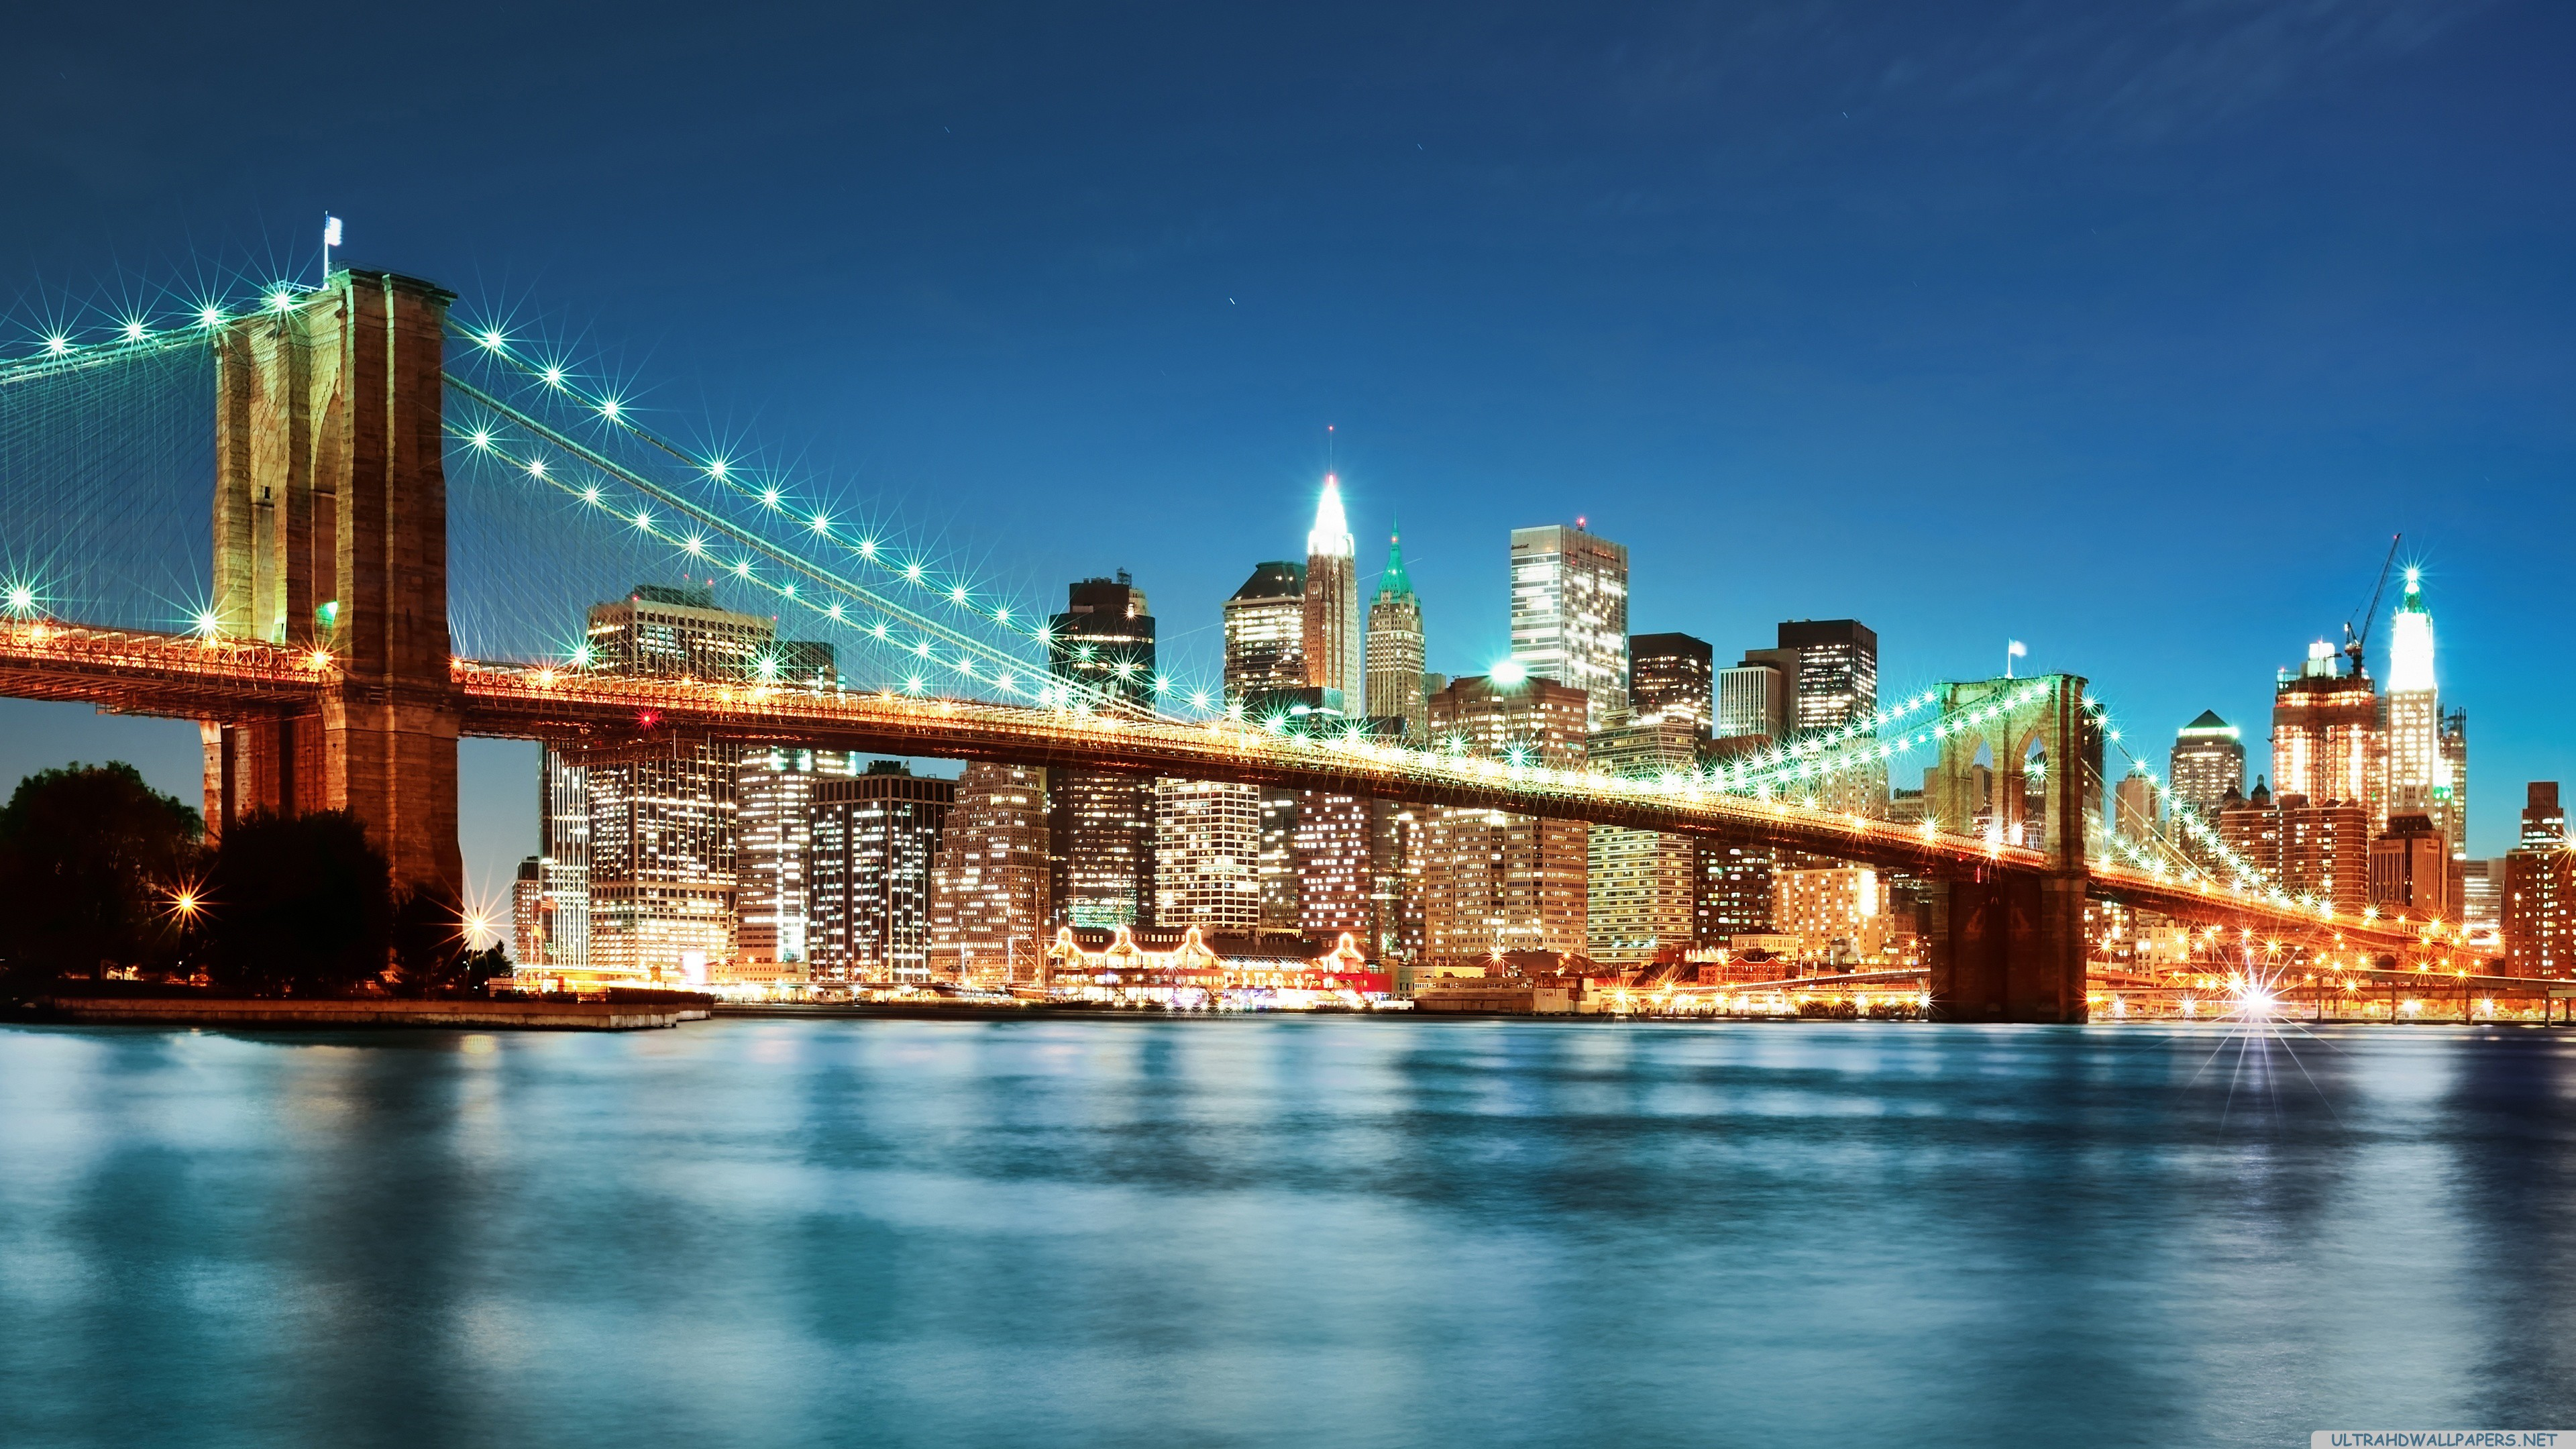 New York City Lights 4K Ultra HD wallpaper 4k WallpaperNet 3840x2160